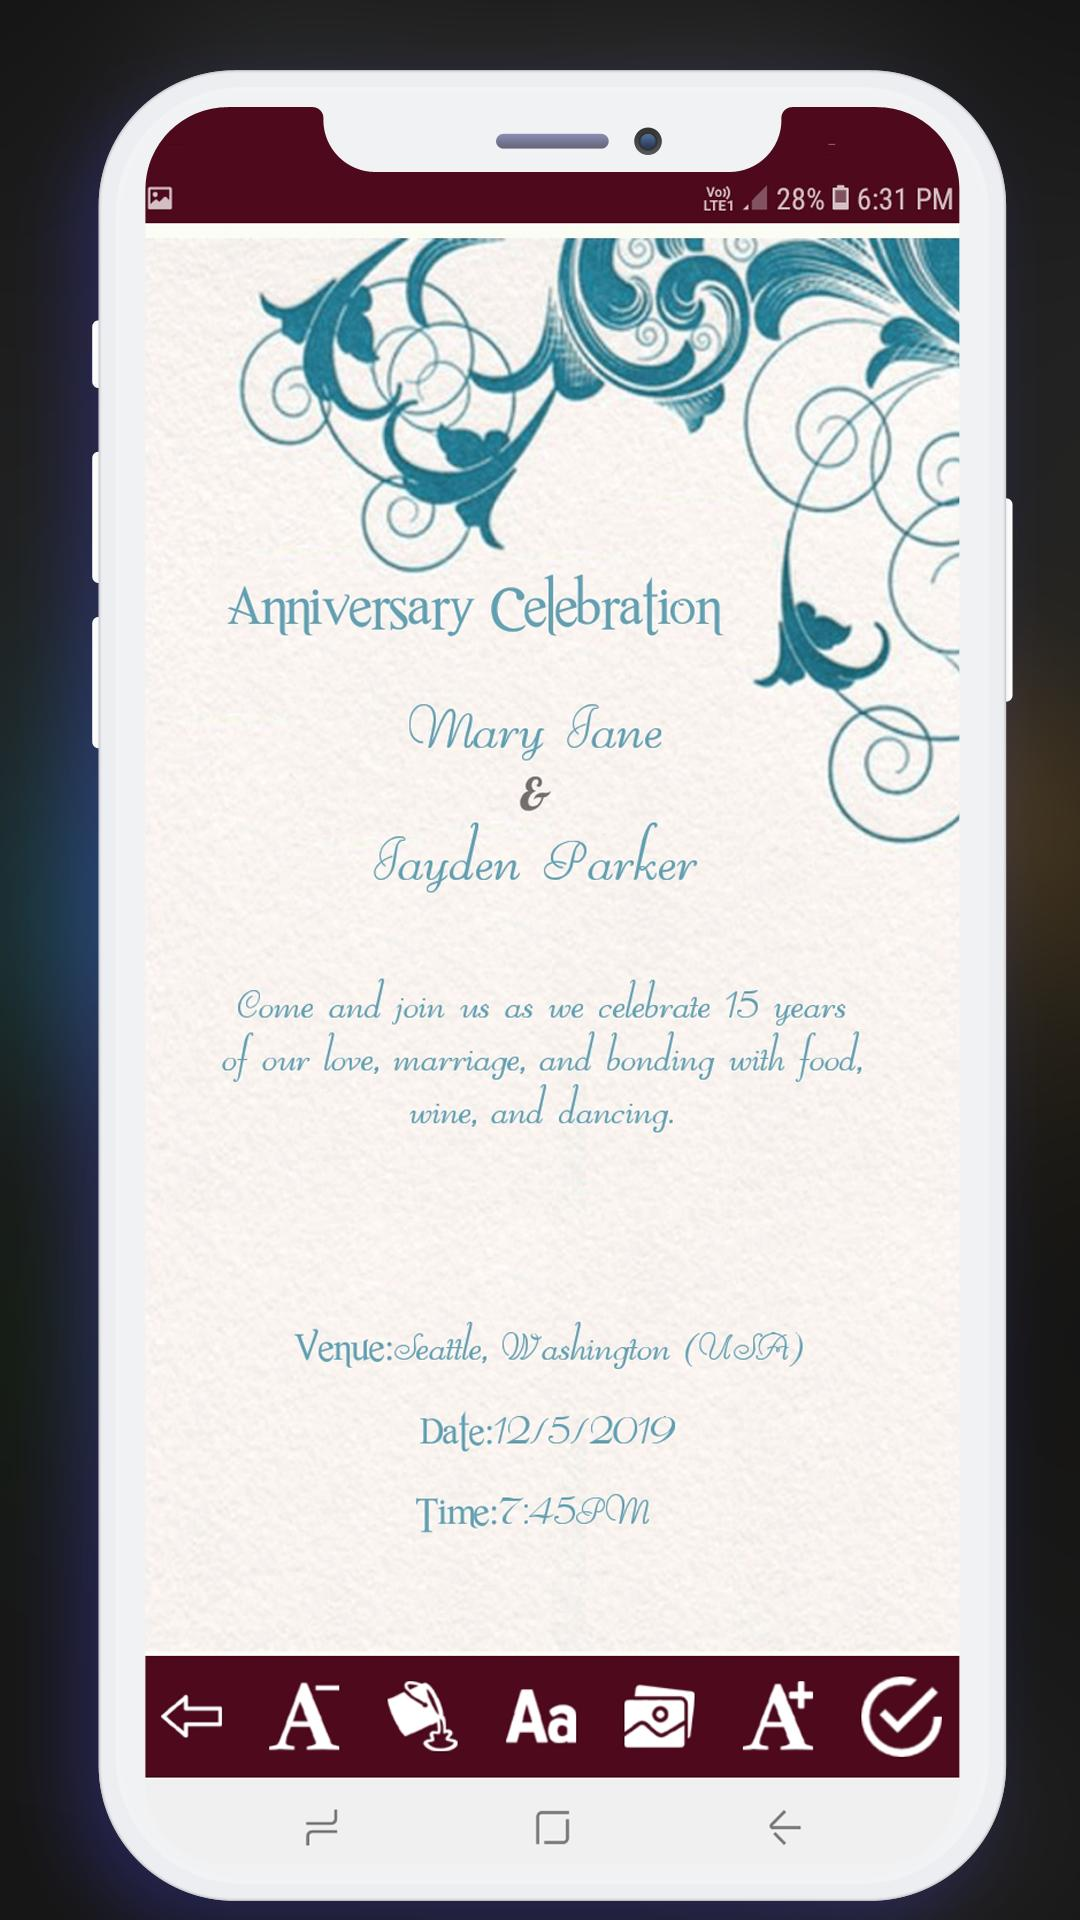 Invitation Card Maker Free Greeting Cards Design For